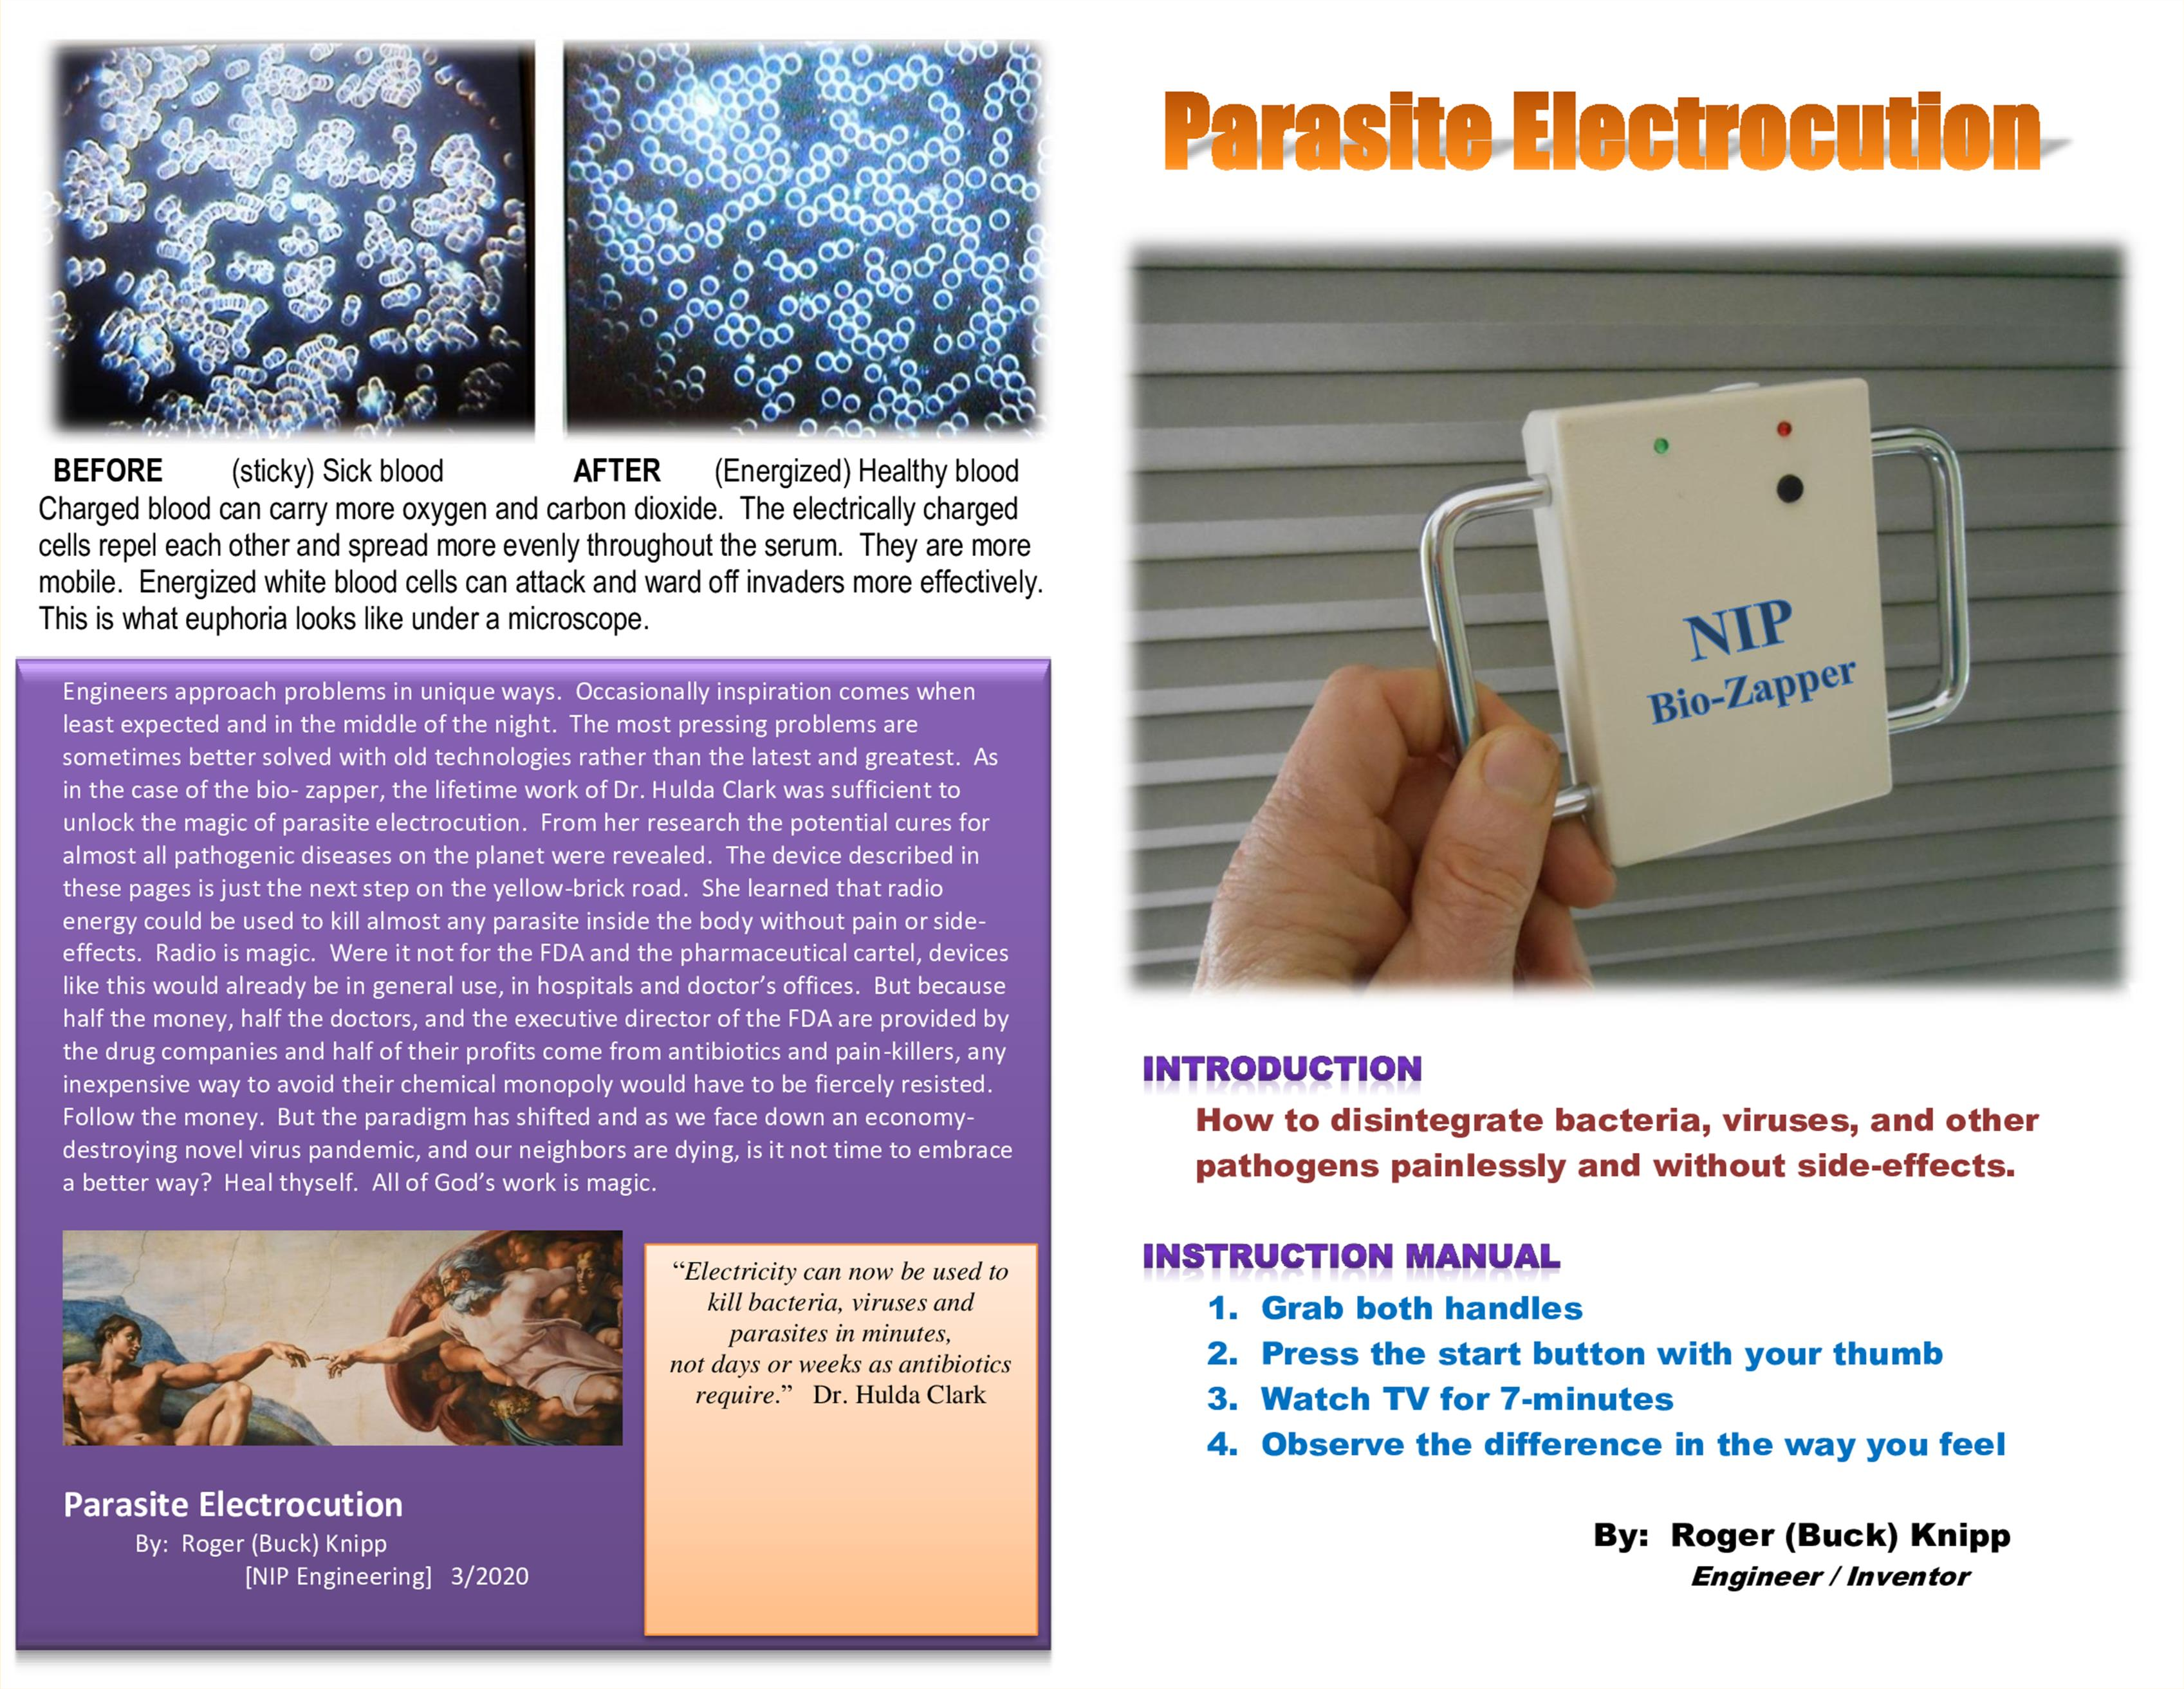 Parasite Electrocution cover image